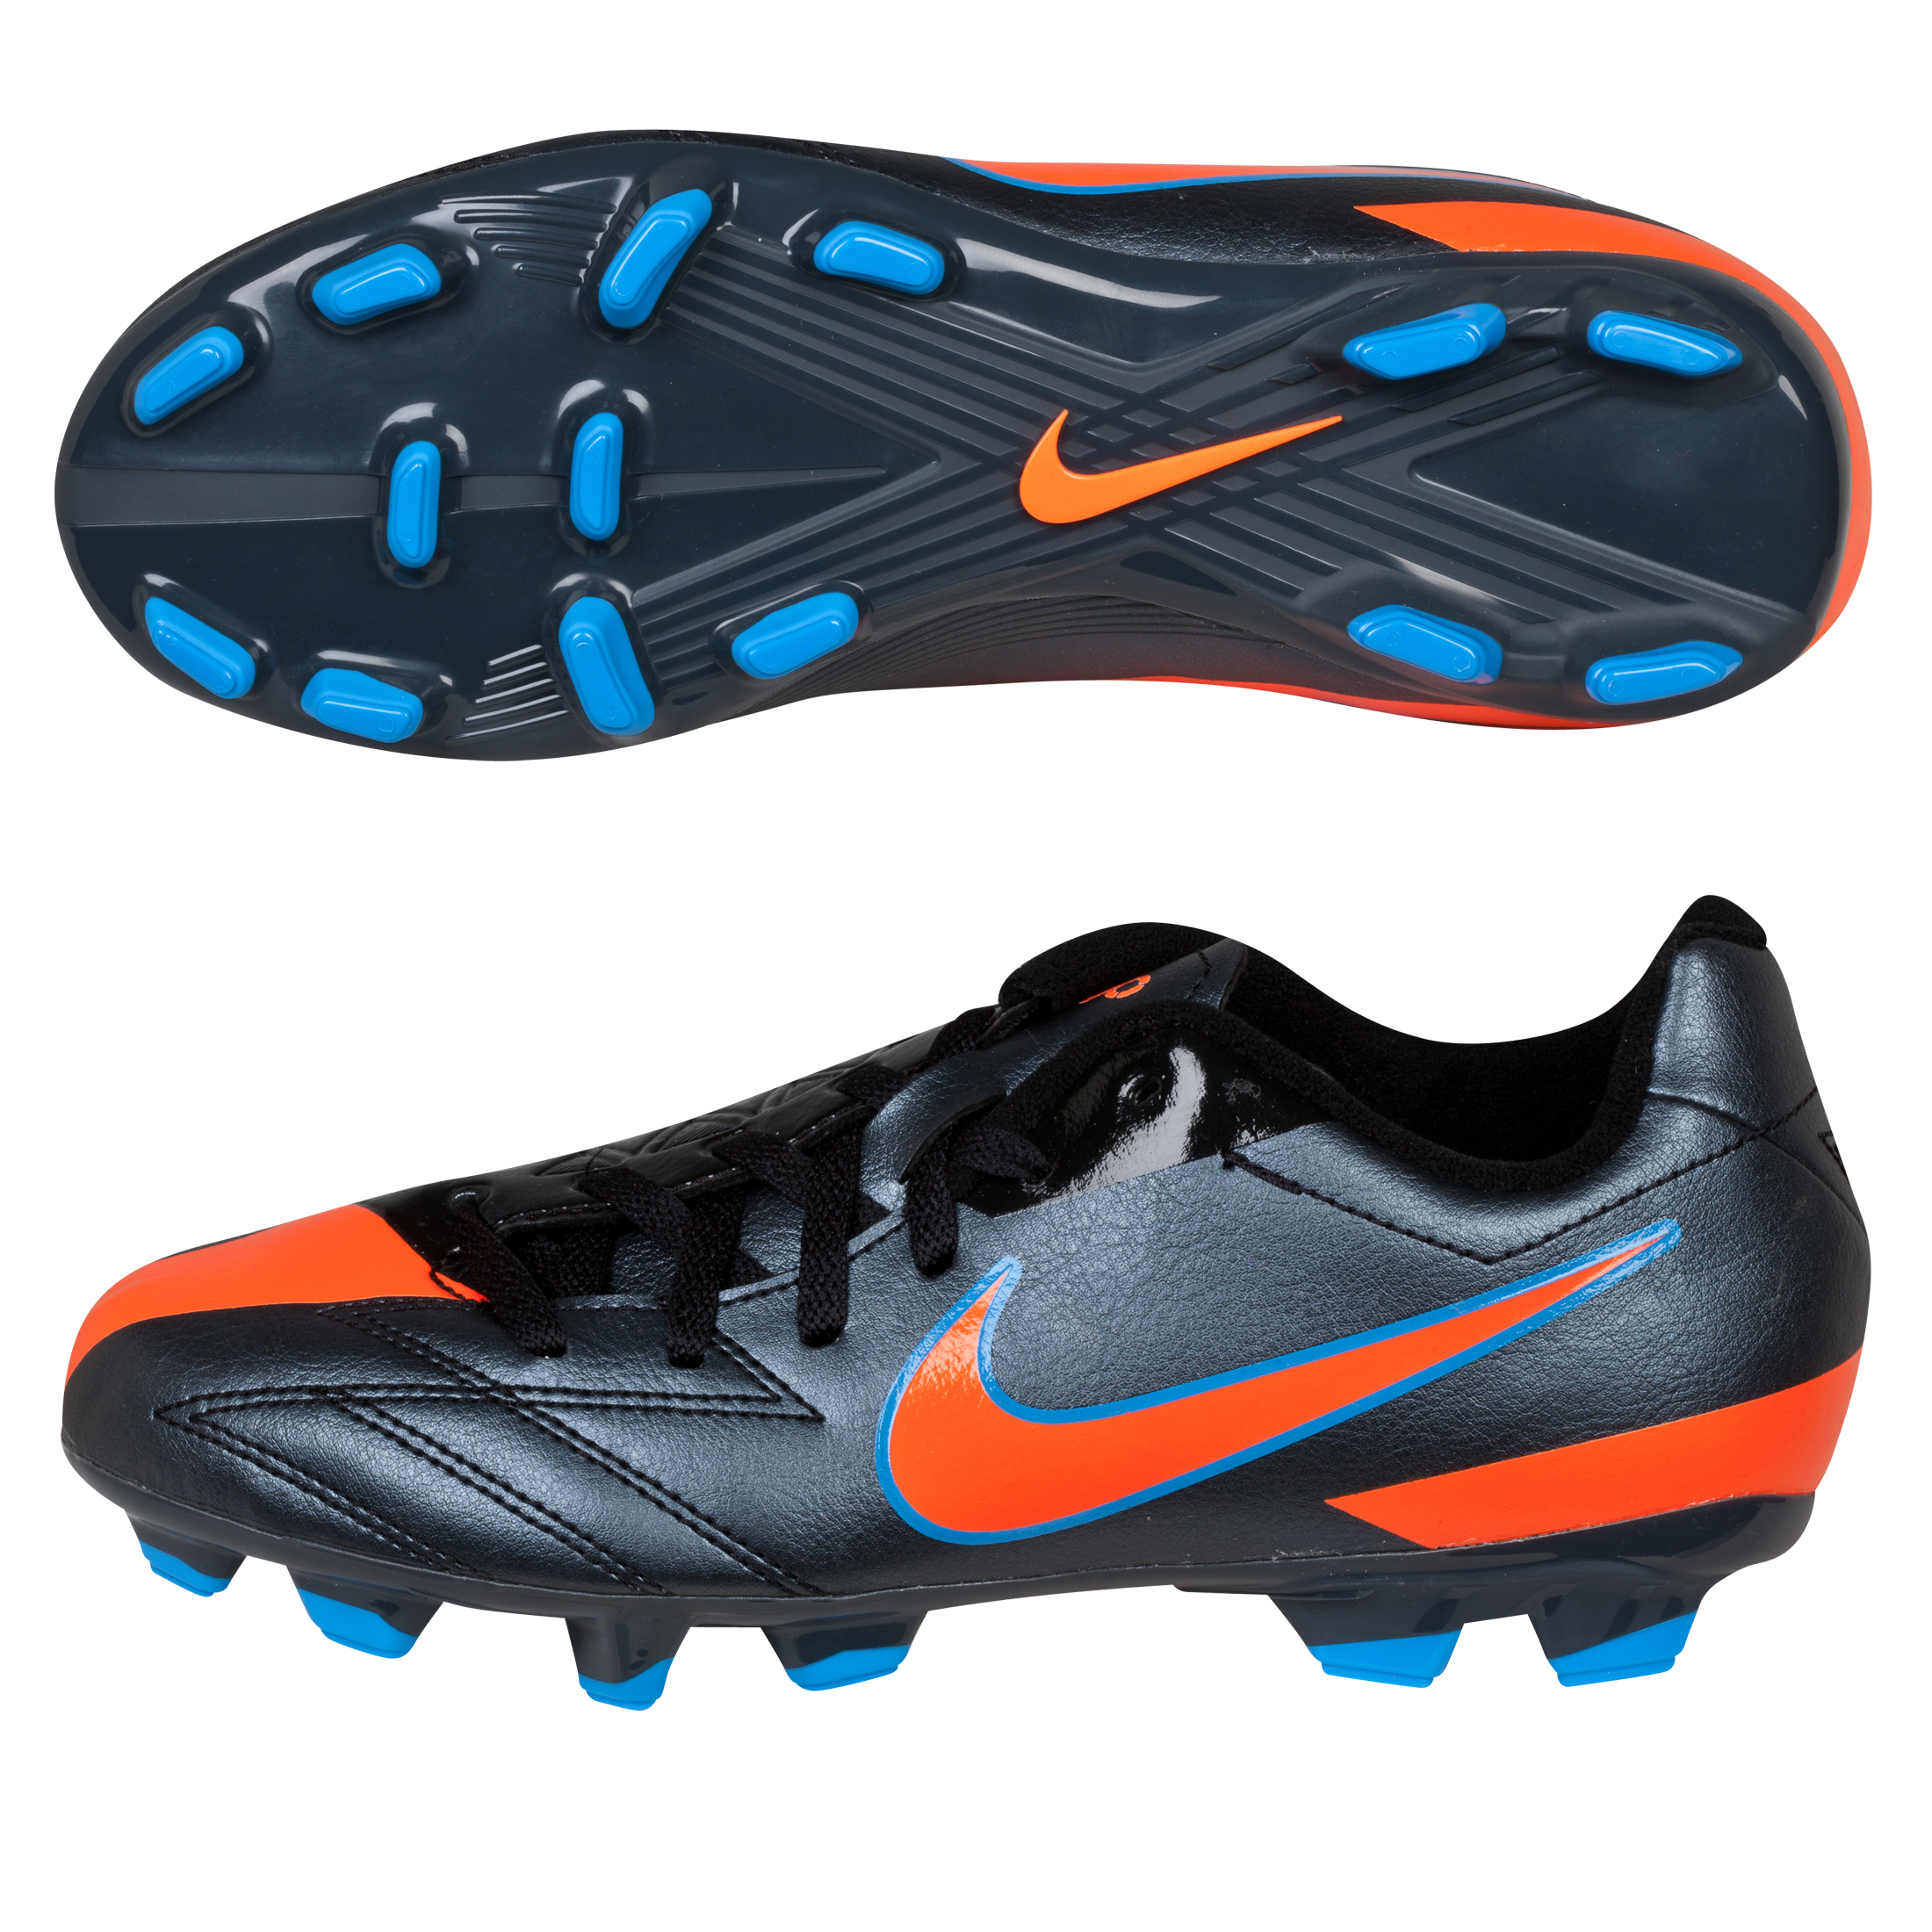 Nike Total90 Shoot IV Firm Ground Football Boots - Black/Total Orange/Blue Glow - Kids